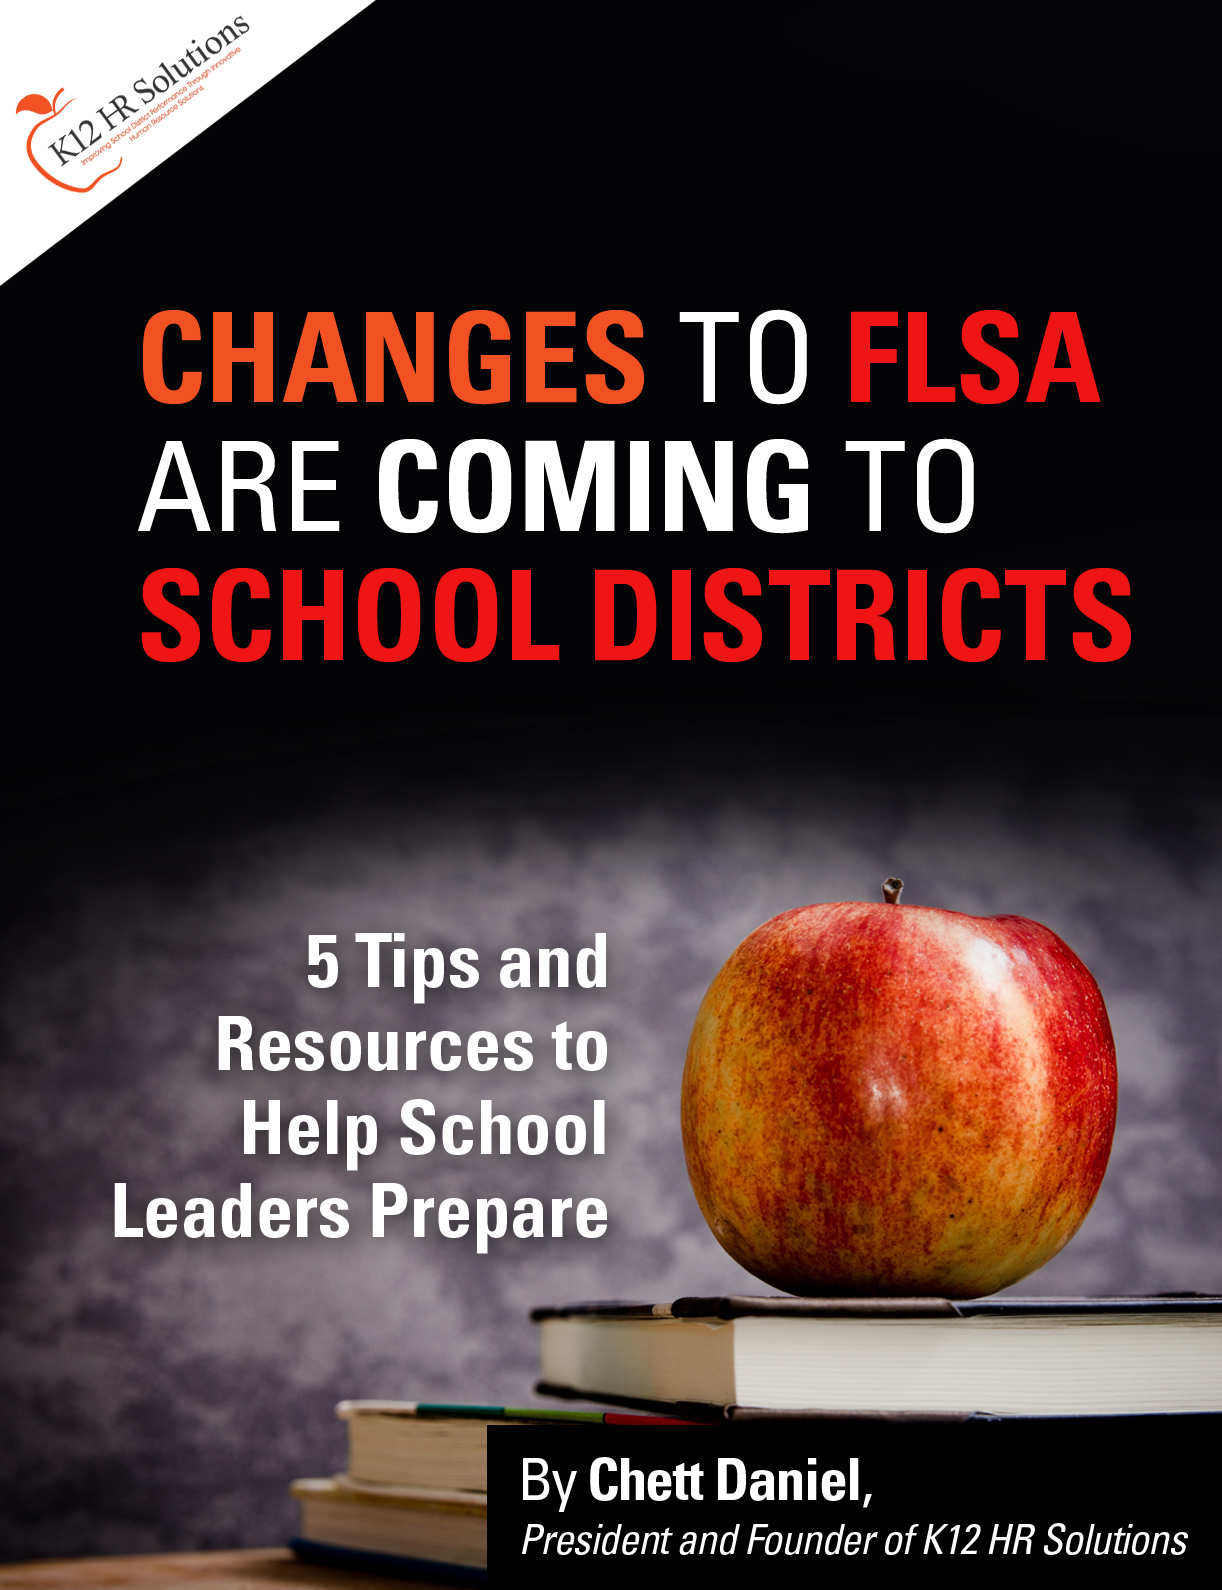 Changes to FLSA for School Districts